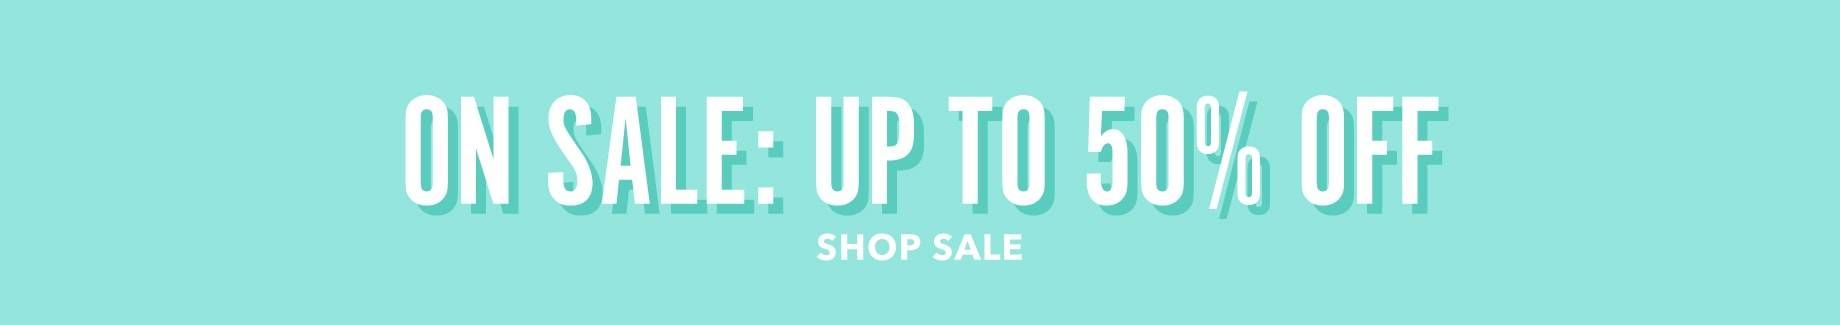 On Sale: Up To 50% Off. Shop Sale